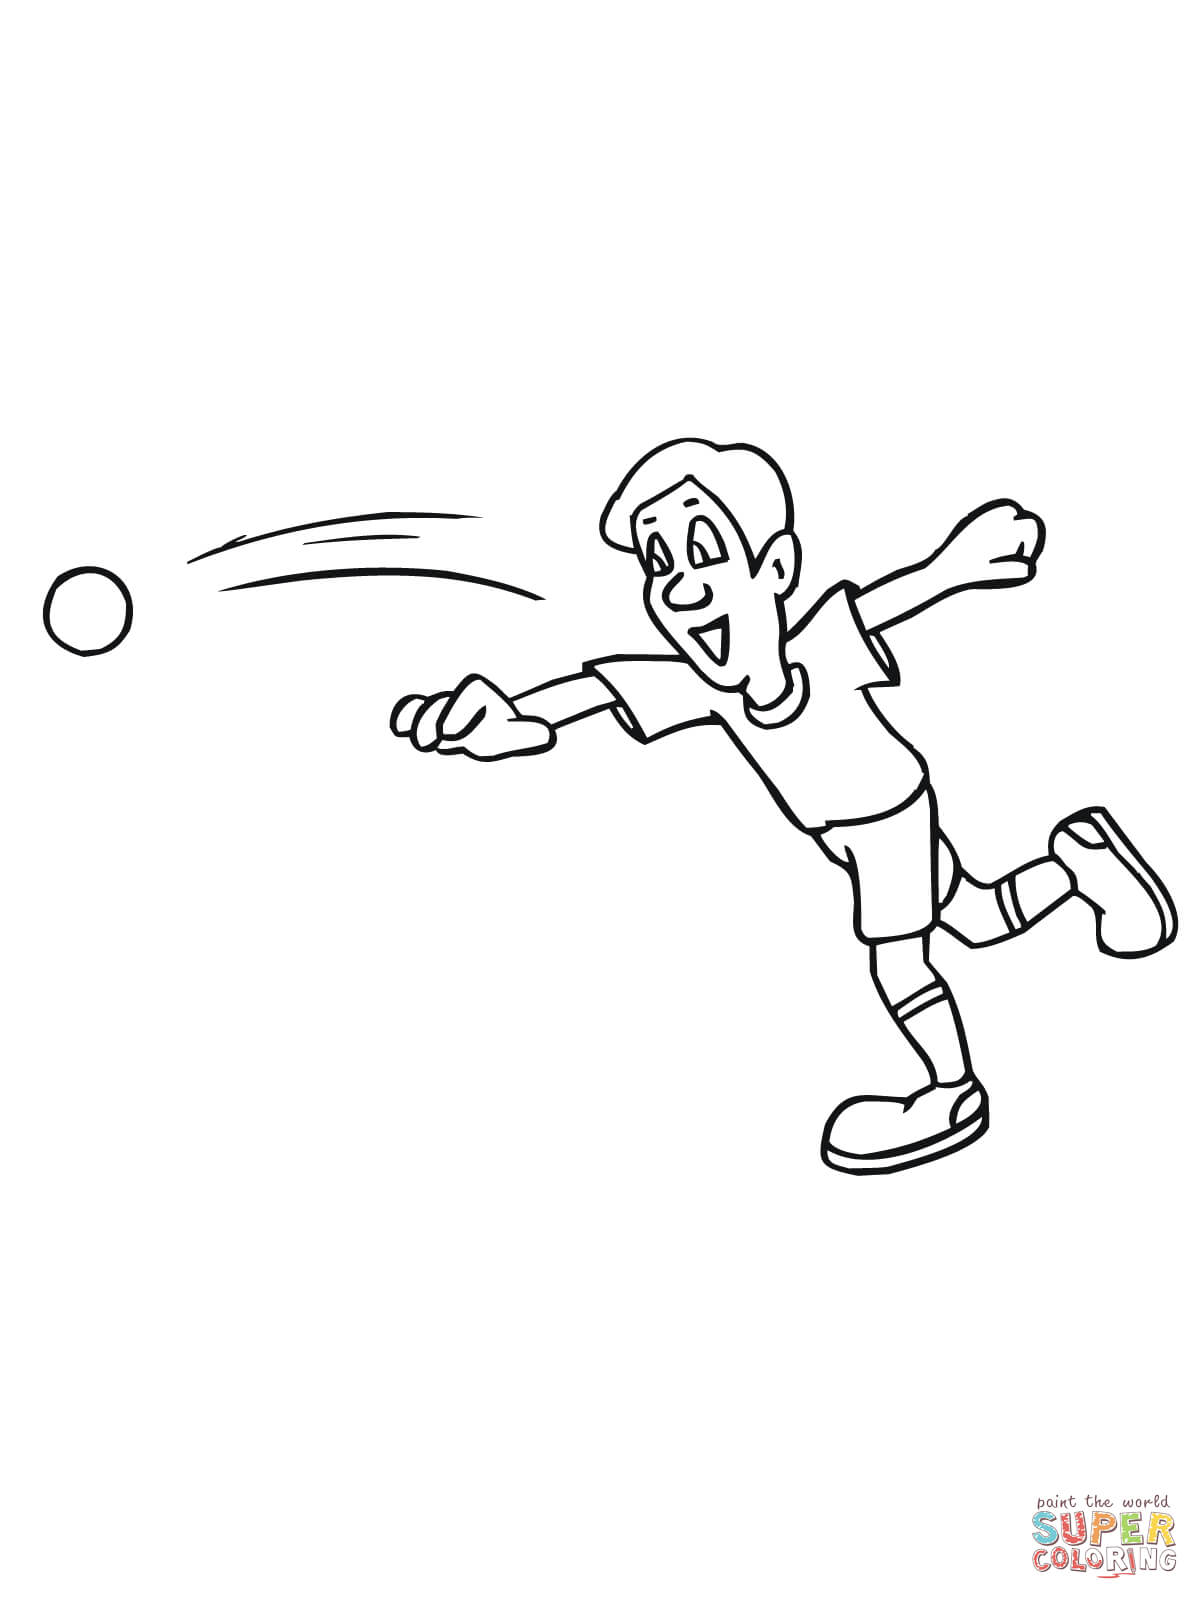 Throwing A Shot Coloring Page